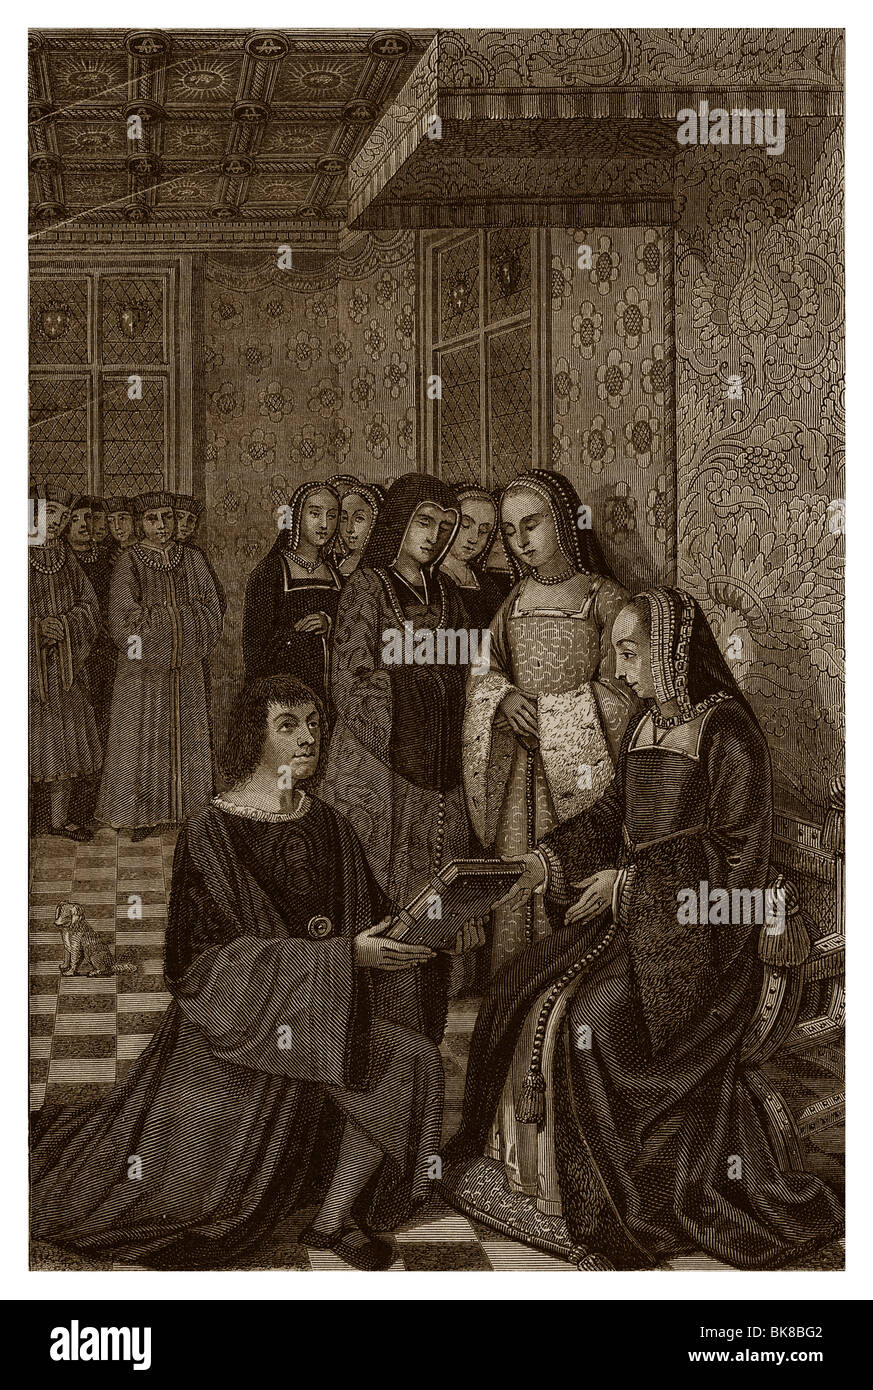 In the 16th century, in the château de Blois, Anne of Brittany in her parade room receiving a volume of poems - Stock Image